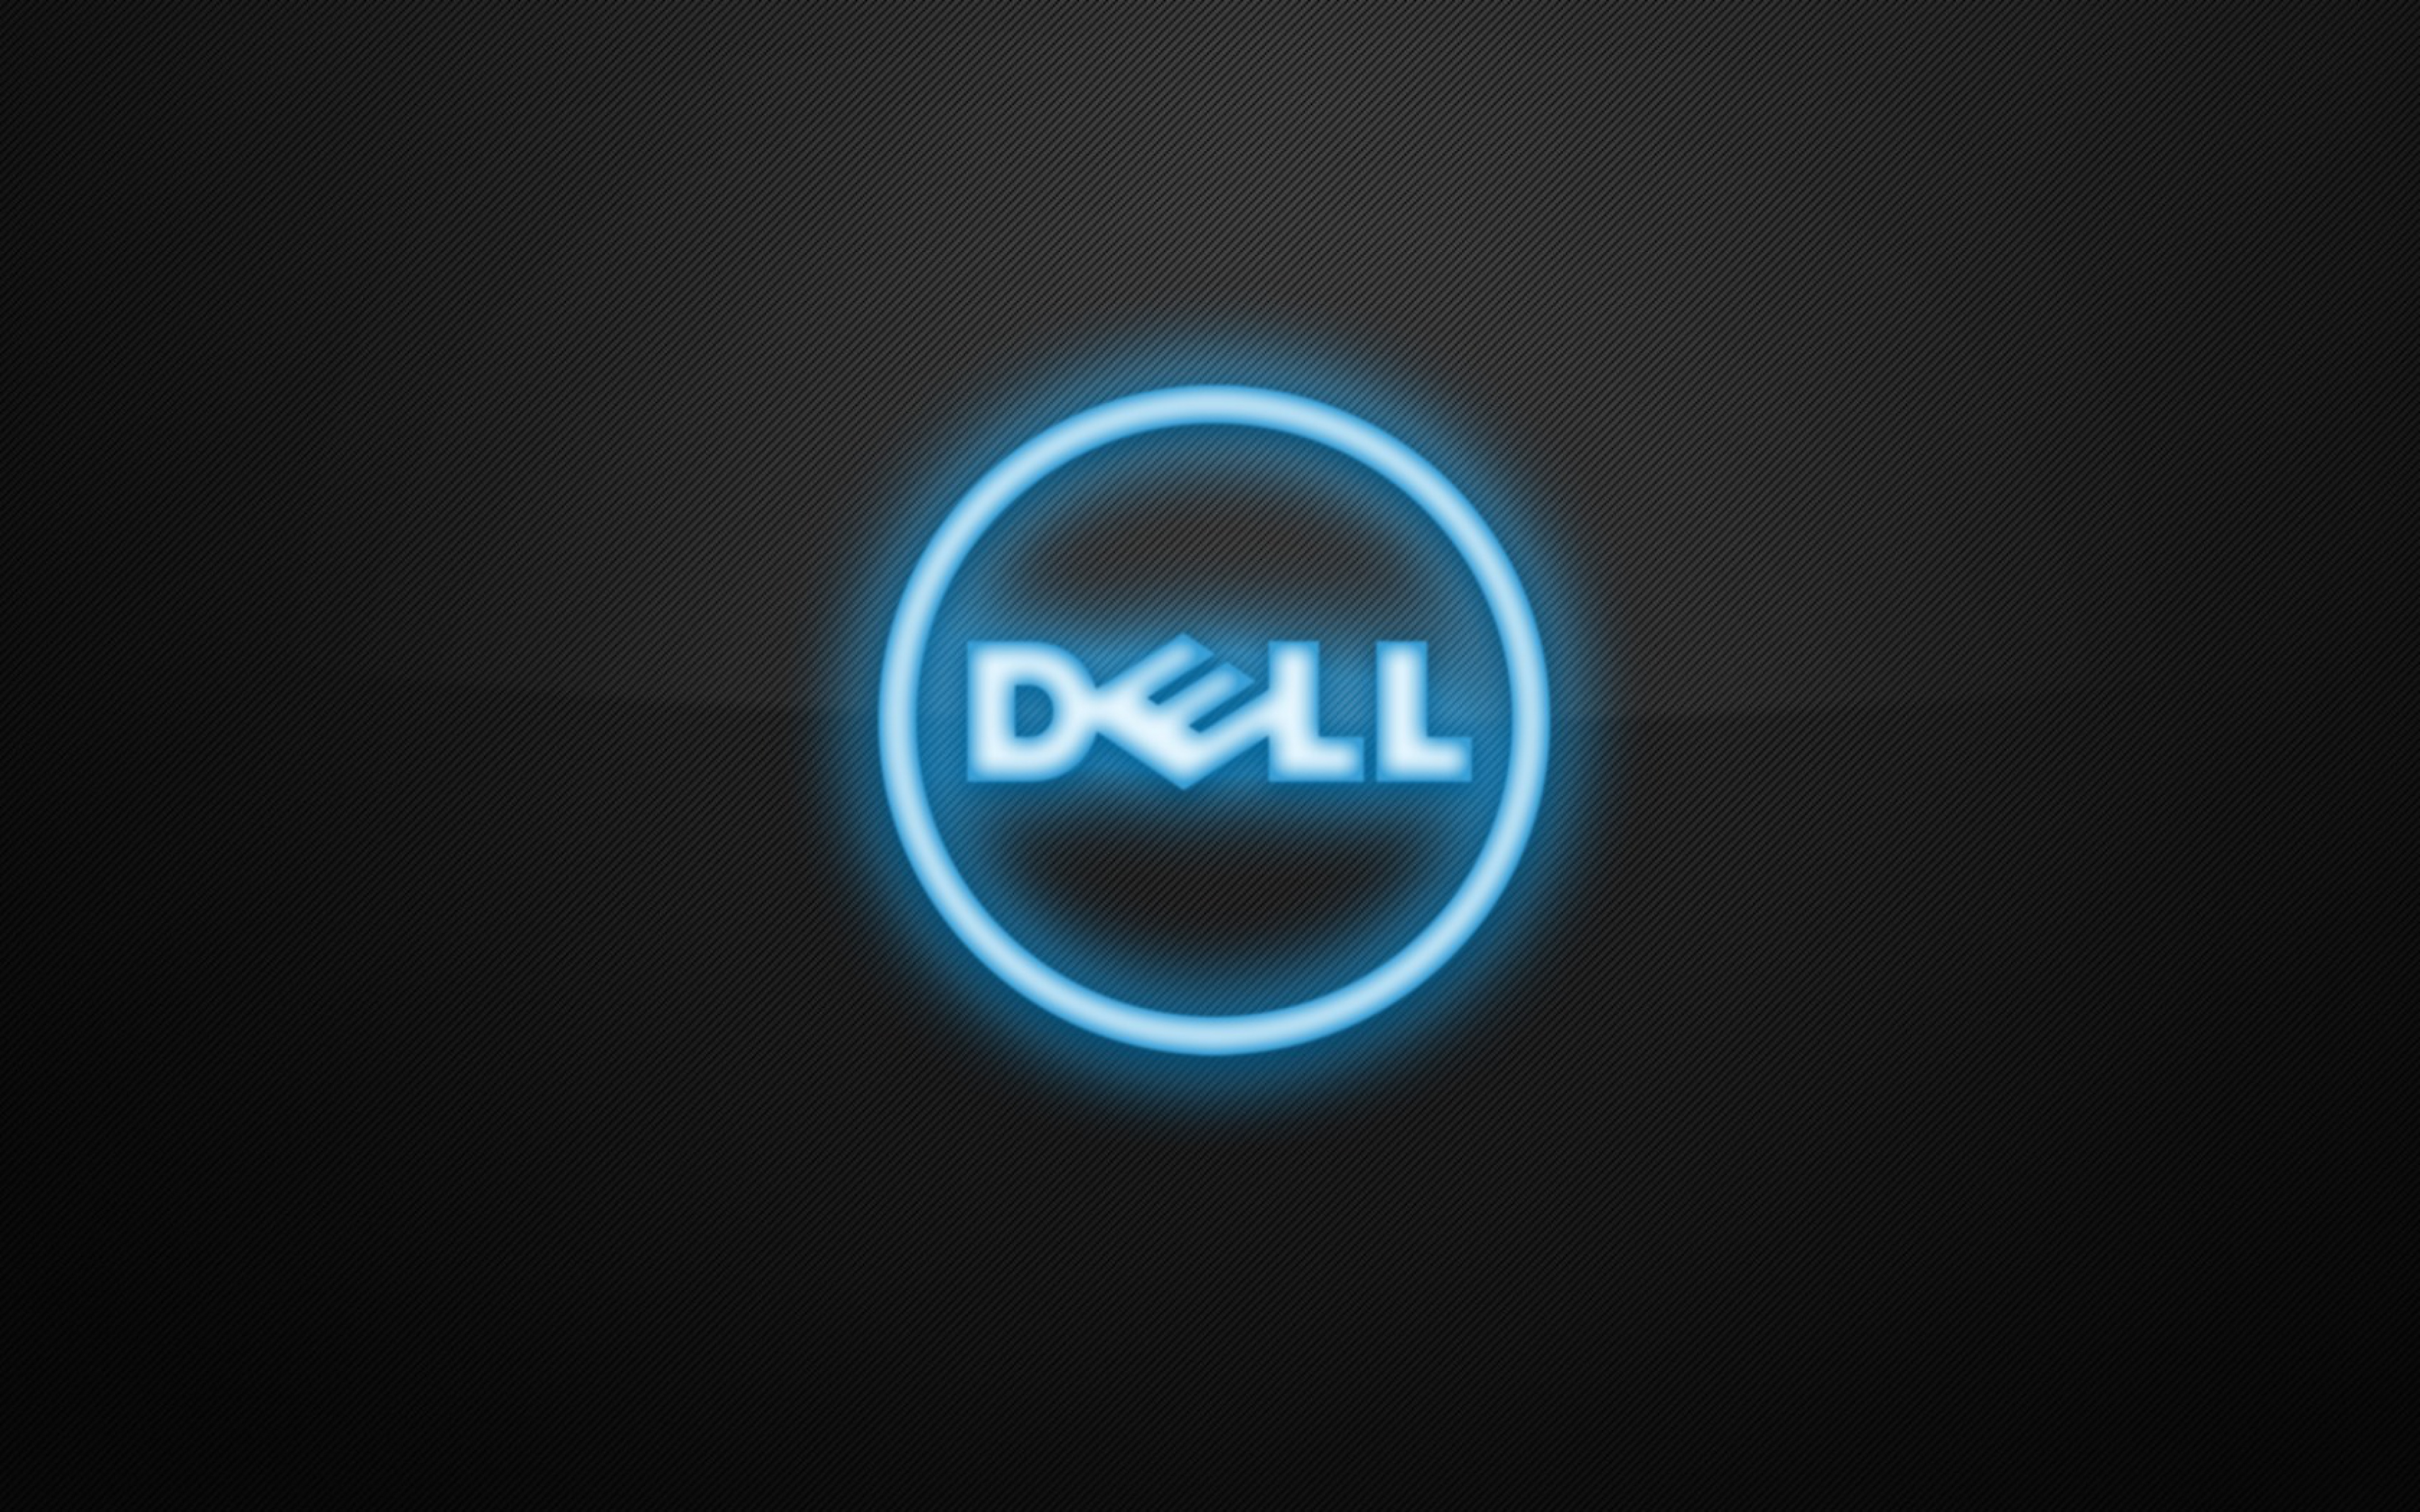 18 Fantastic HD Dell Wallpapers